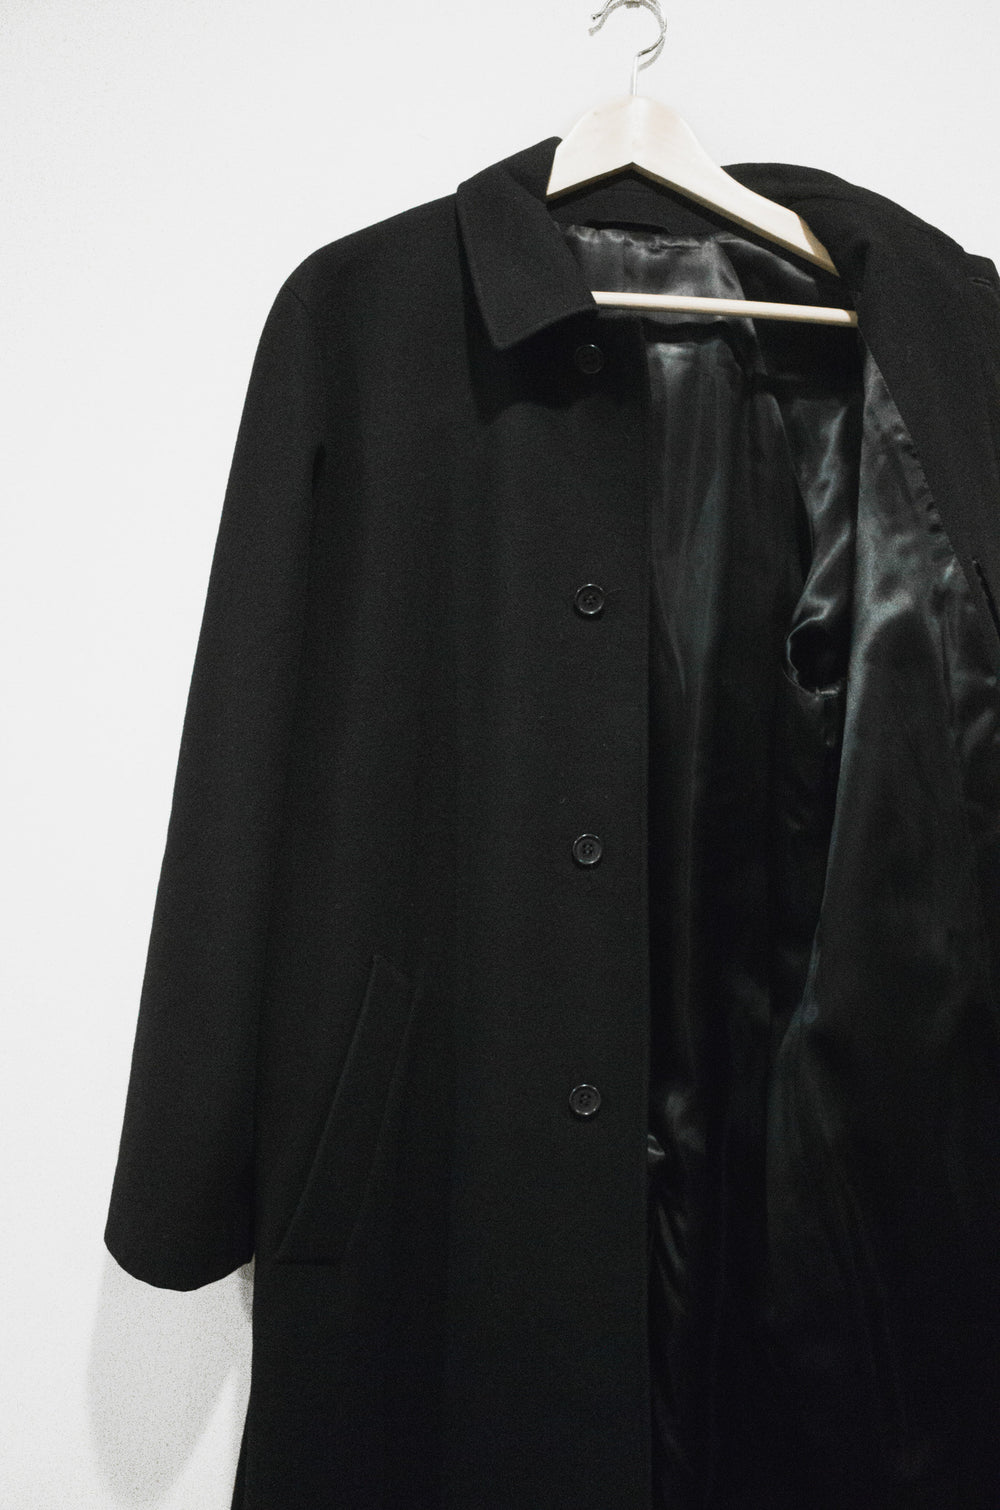 Helmut Lang Wool/Cashmere Boxed Shoulder Mac